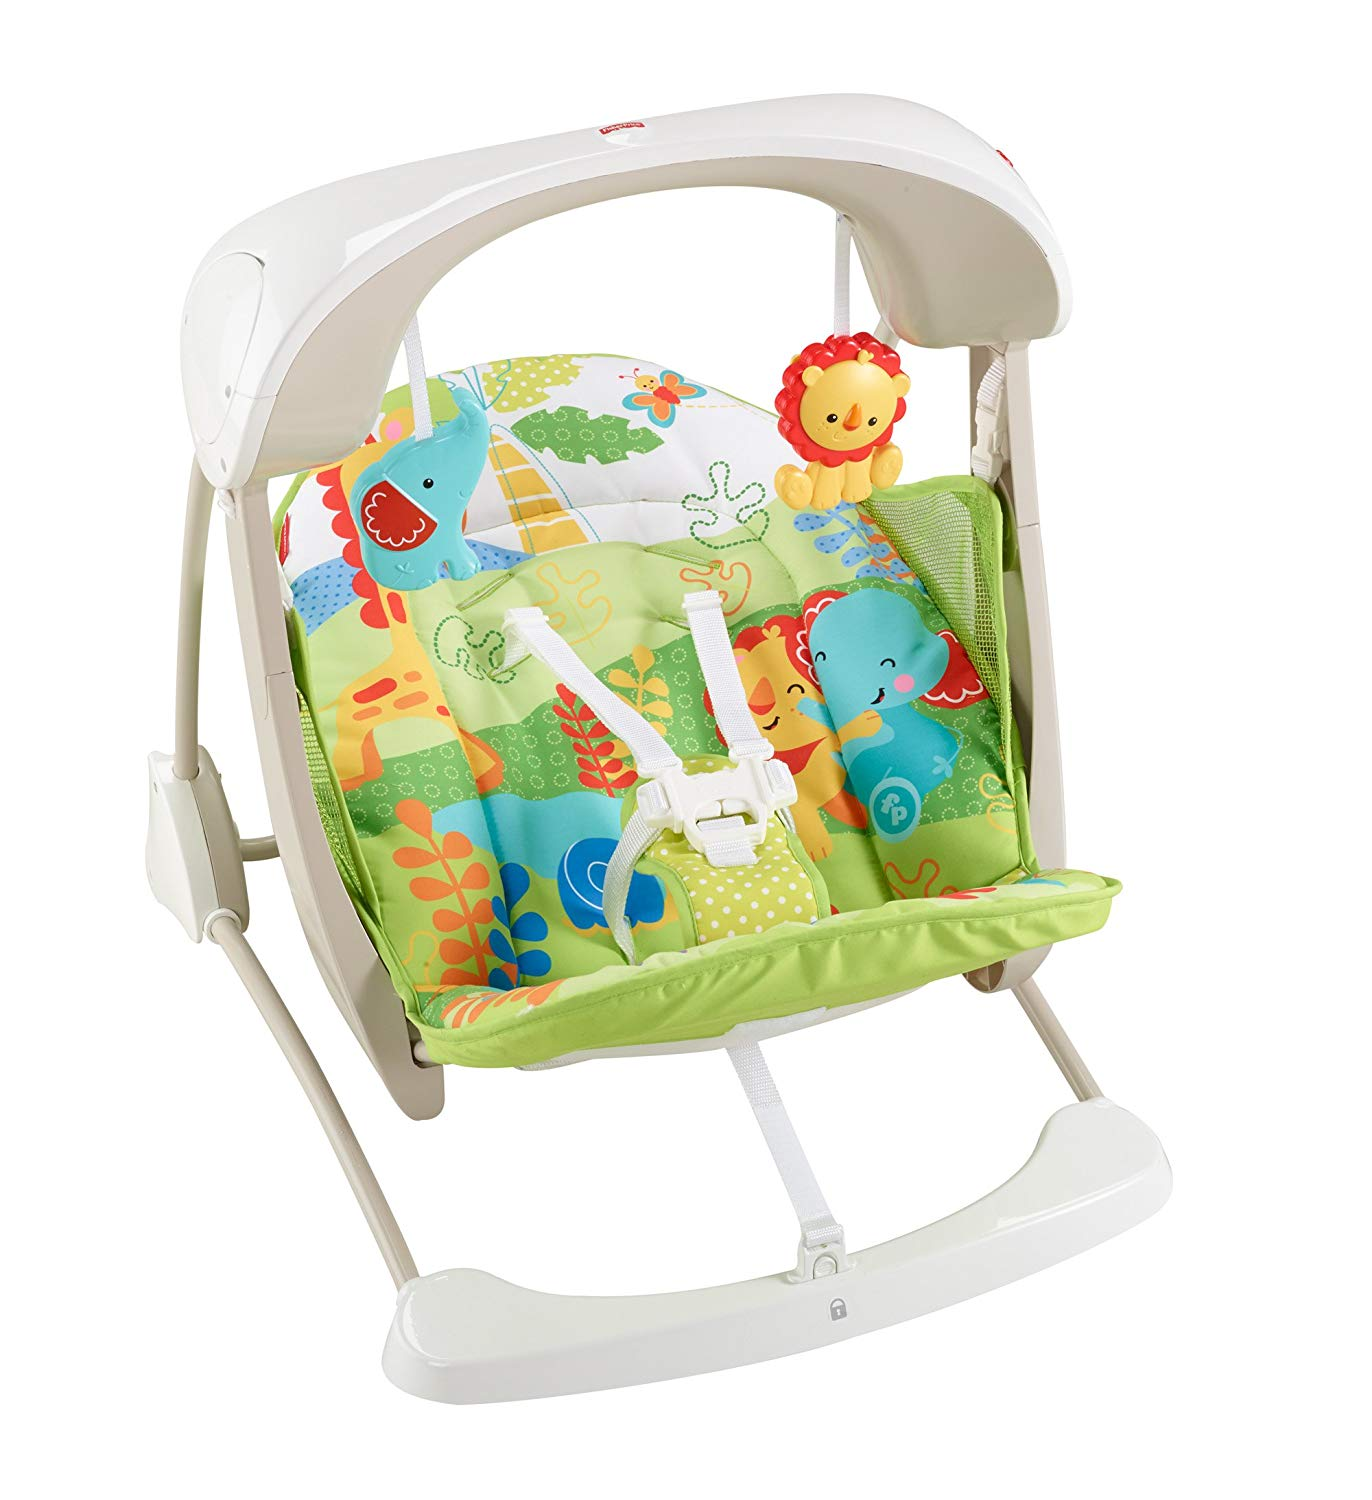 Fisher-Price Take-Along Swing and Seat   Baby Cradle Swing